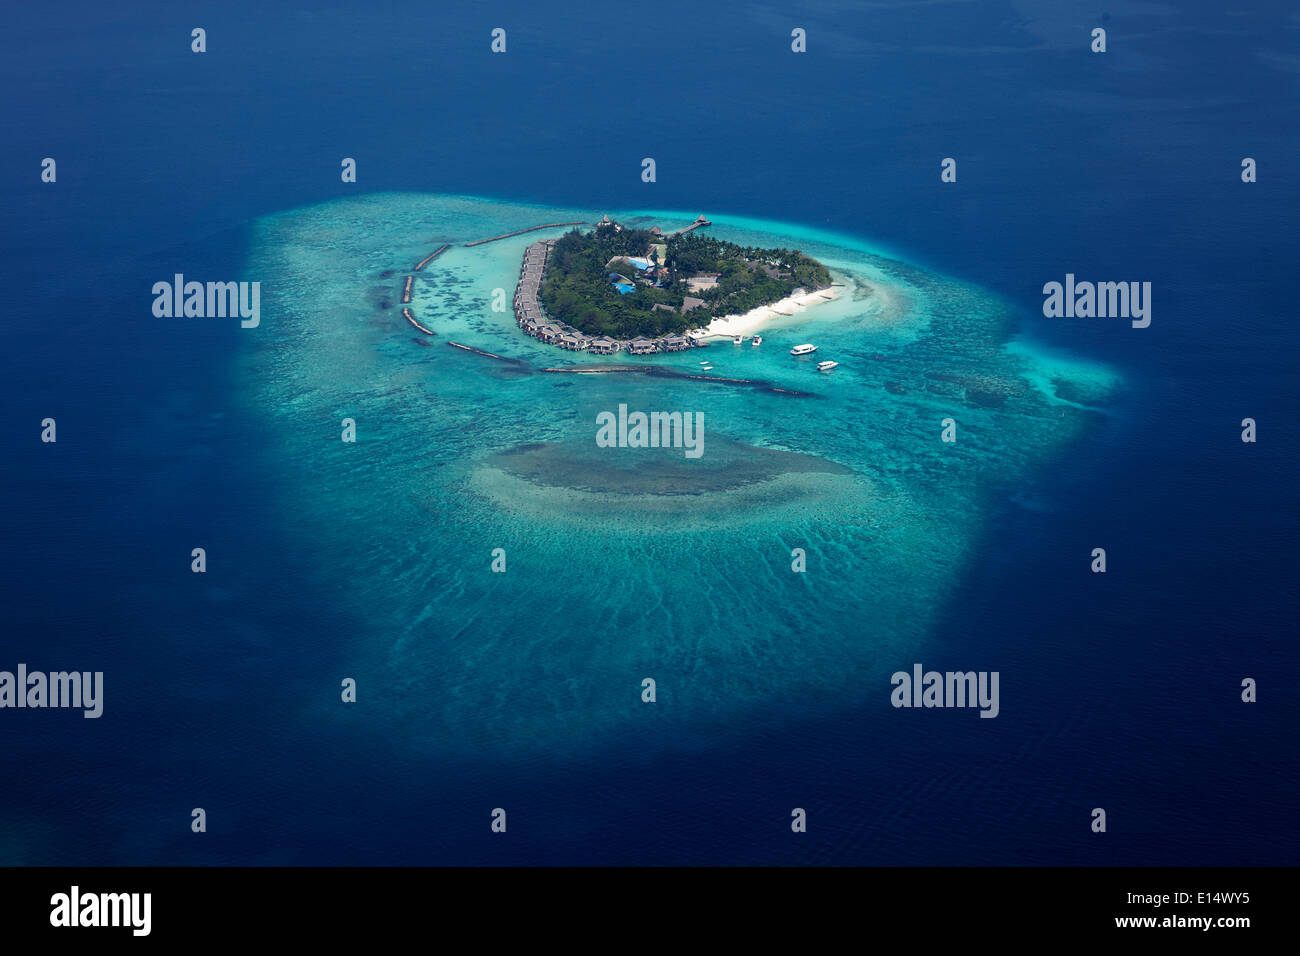 Aerial view, island in the Indian Ocean, Maldives - Stock Image